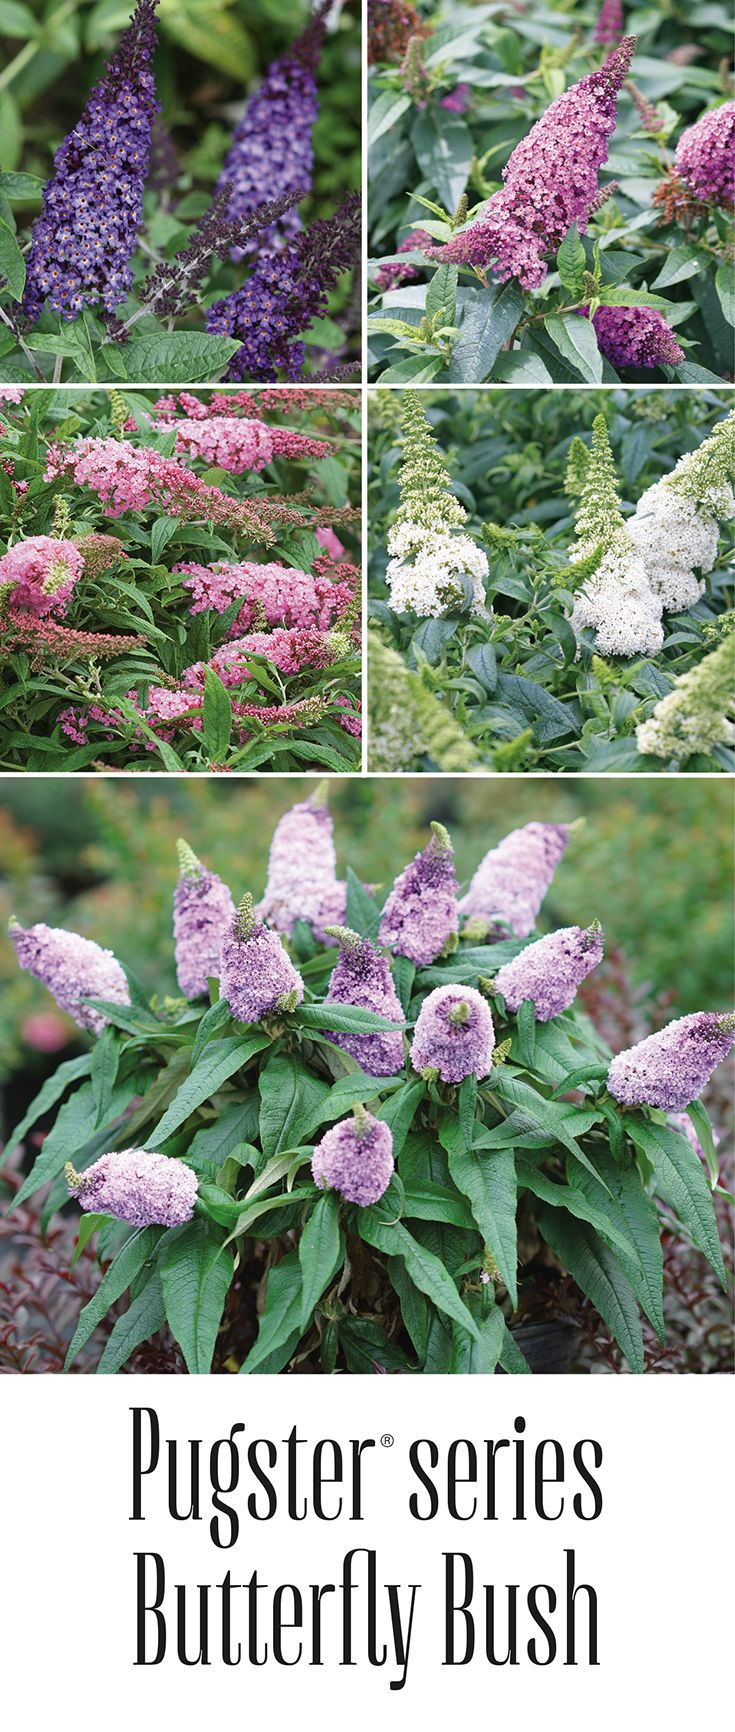 There S A Reason These Petite Flowering Shrubs Are Often Referred